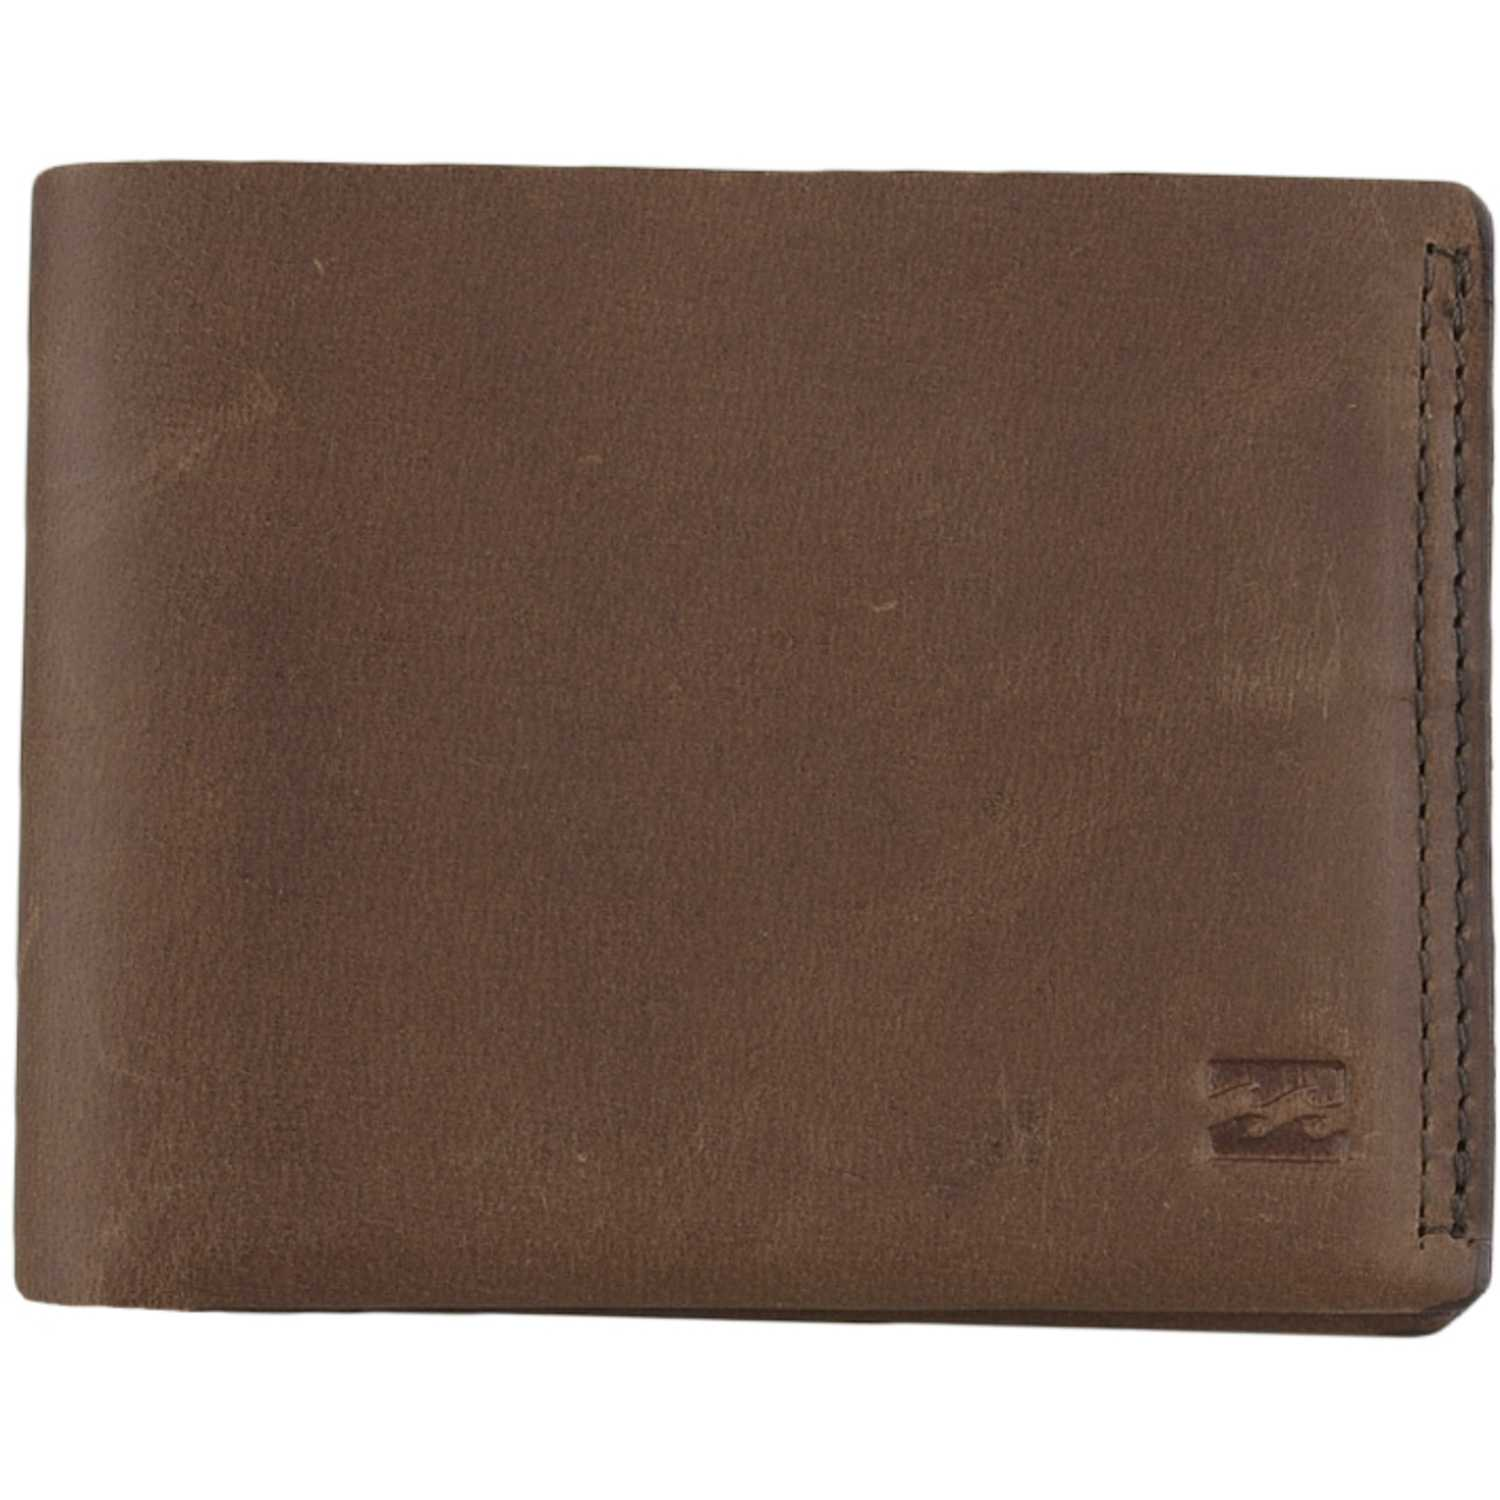 Billetera de Hombre Billabong Marron all day leather